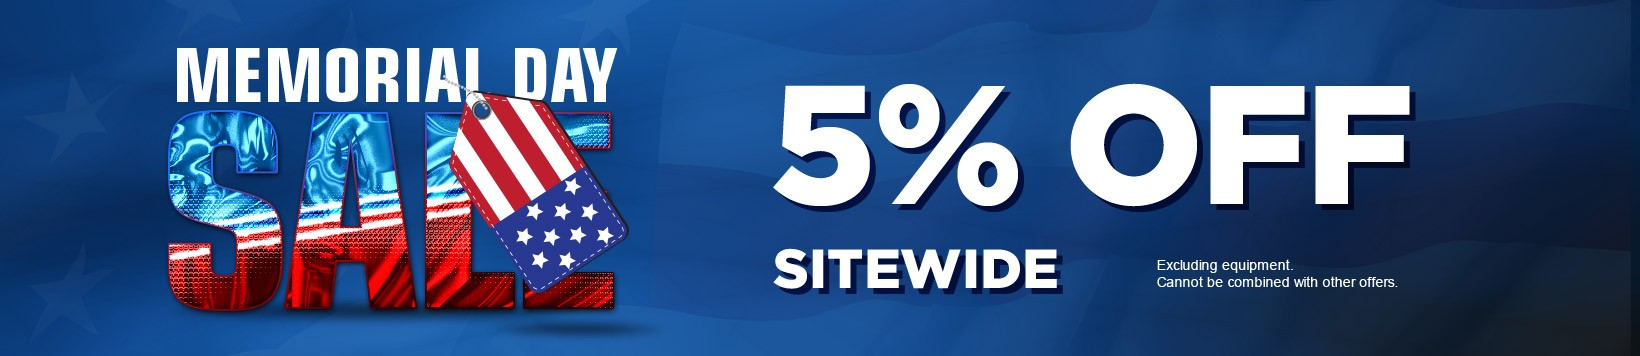 Save 5% Sitewide, excluding equipment